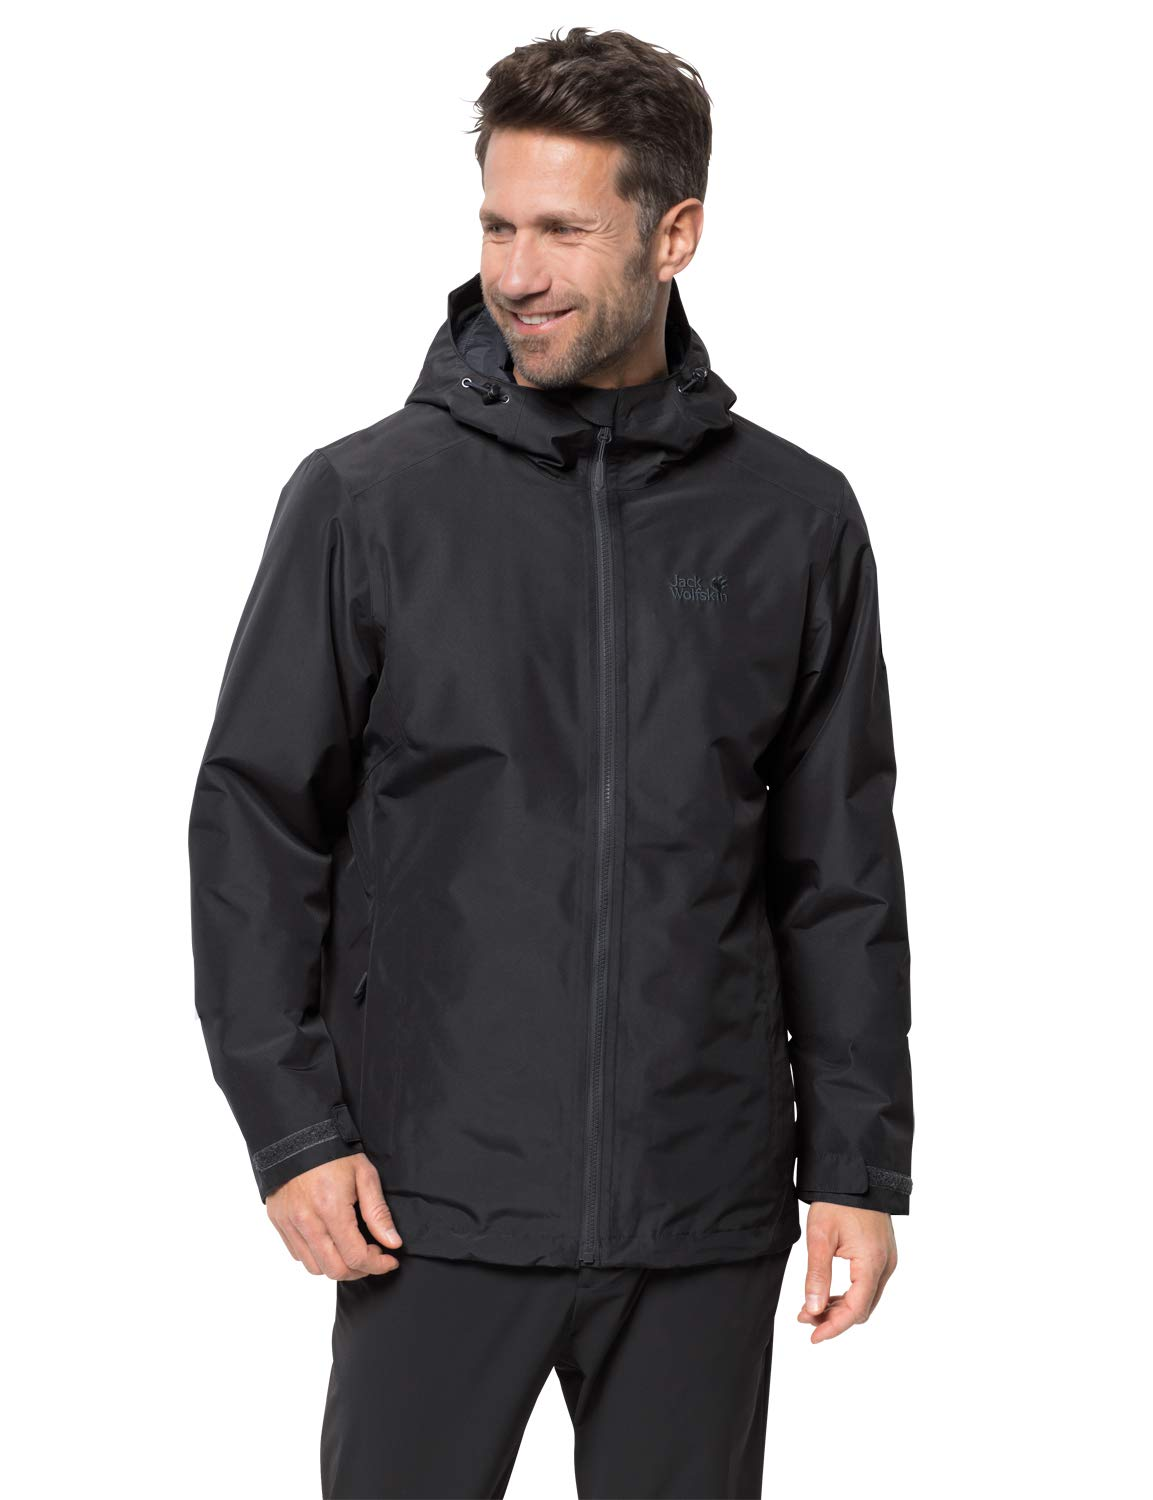 Chaqueta con aislamiento impermeable Chilly Morning Jack Wolfskin para hombre